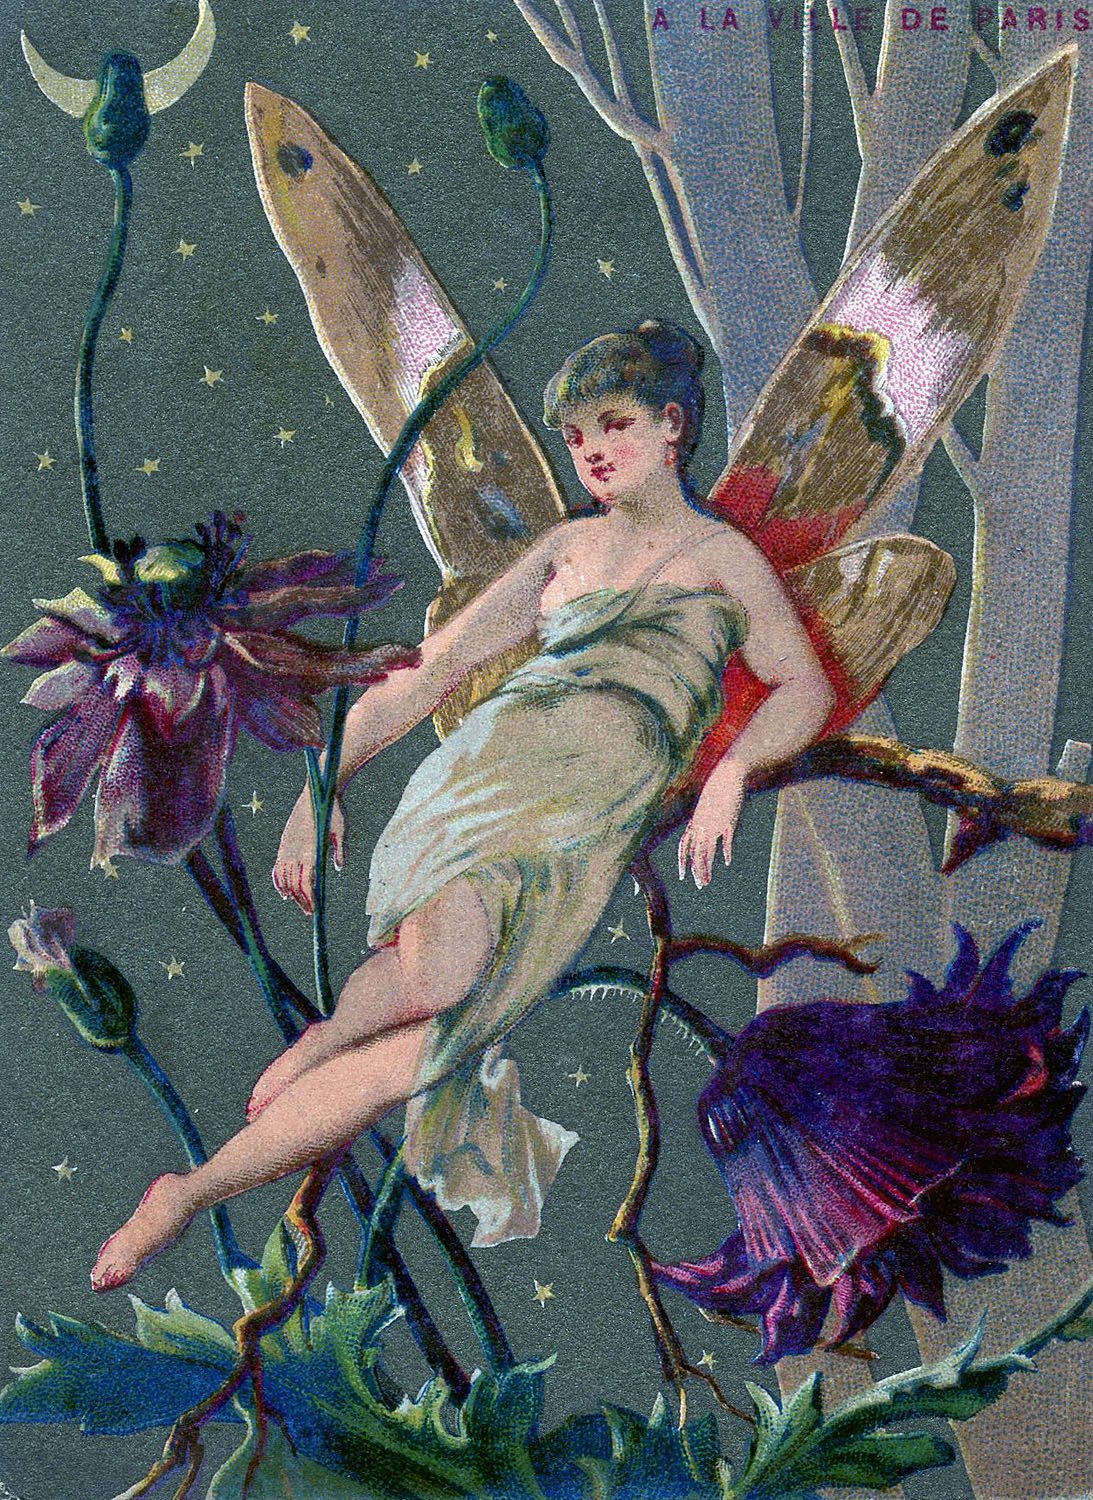 Vintage Graphic - Fairy in Moonlight - The Graphics Fairy